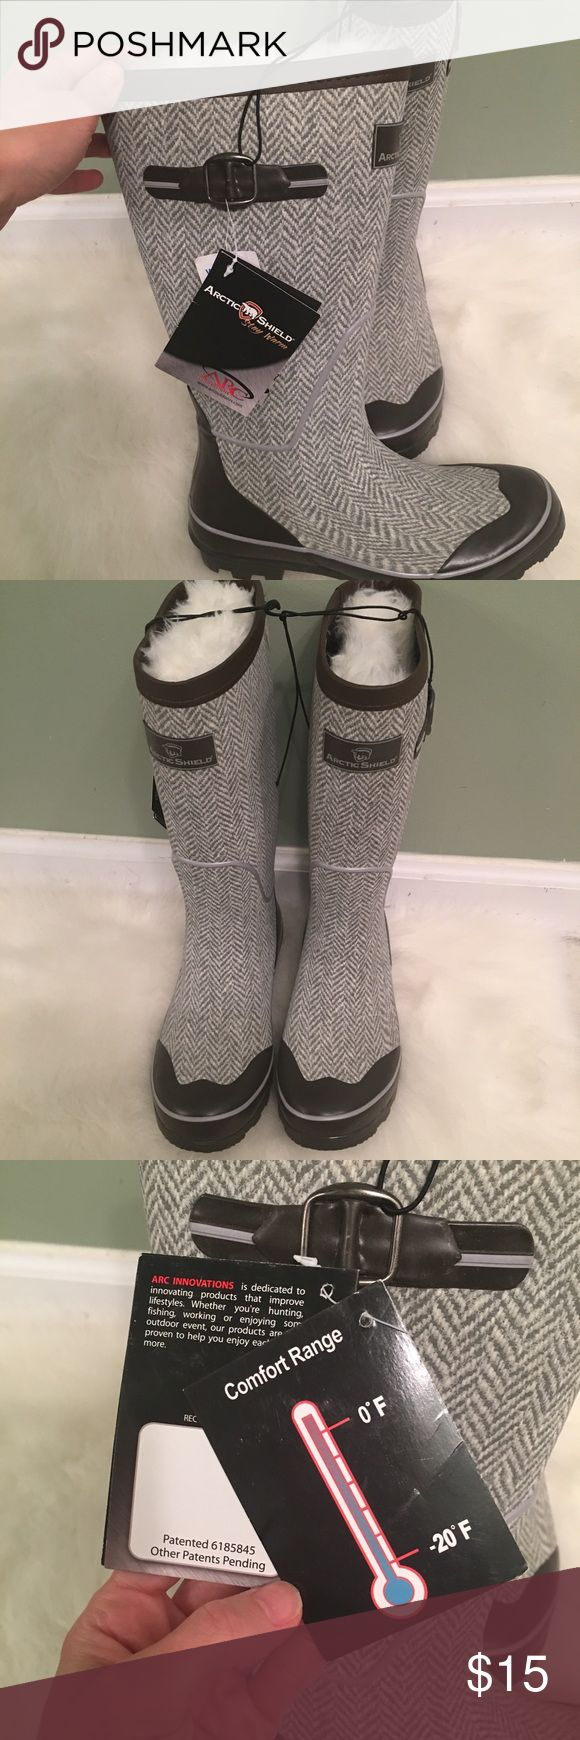 Arctic Shield Snow/Ski Boots Great pair of insulated and waterproof boots for Ski/Snow adventures. Designed to keep your feet warm from temps of 0 to -20! Also perfect if you live in cold, snowy climates. Arctic Shield Shoes Winter & Rain Boots